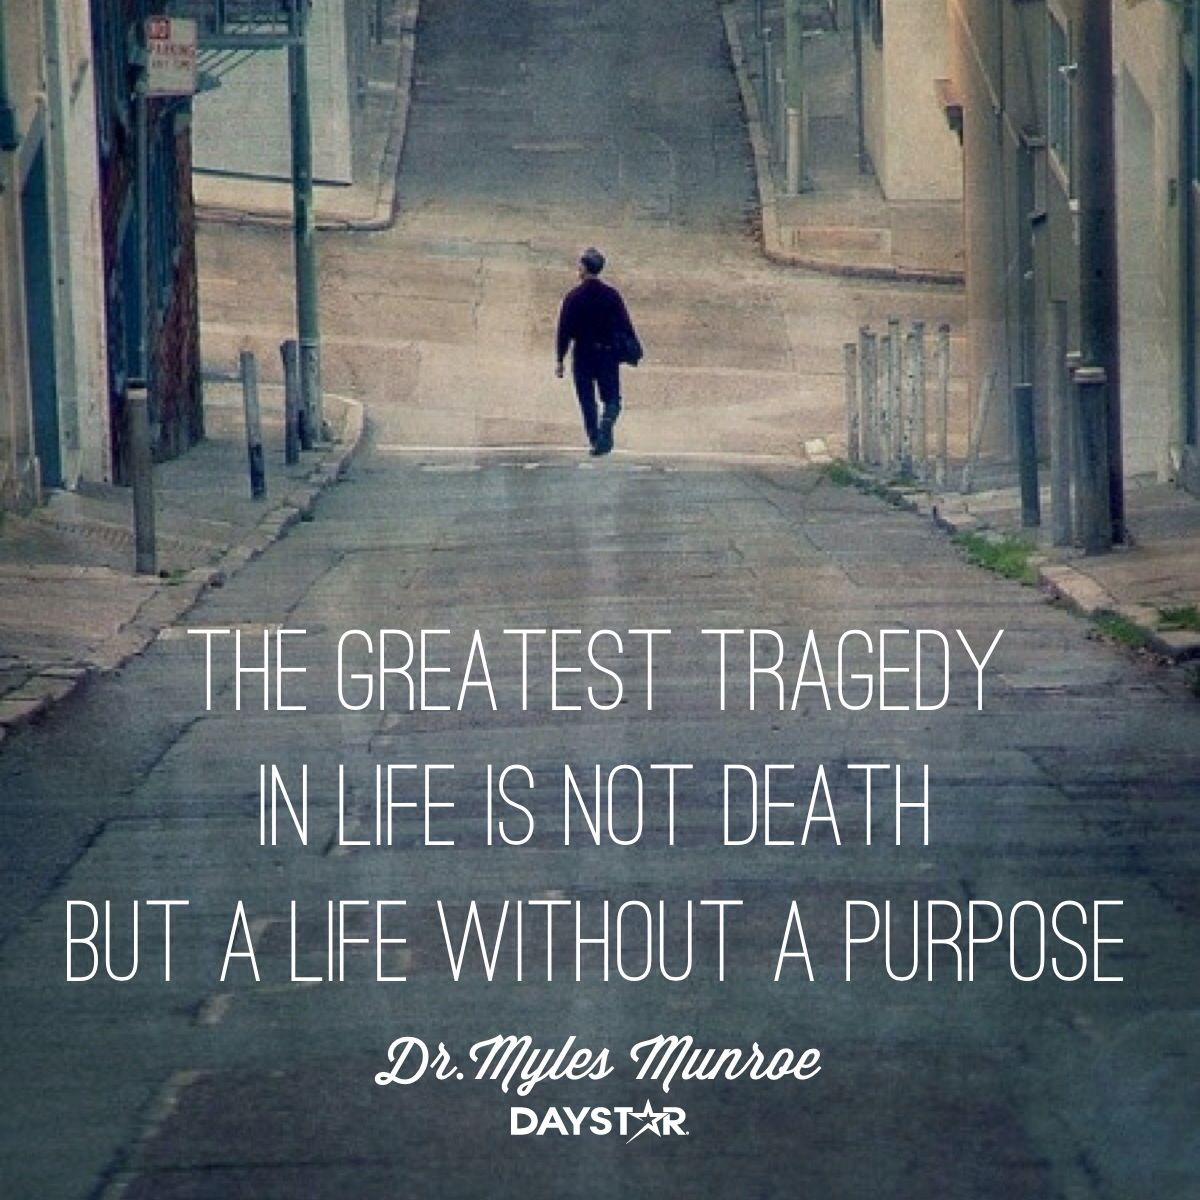 Tragedy Quotes about Life